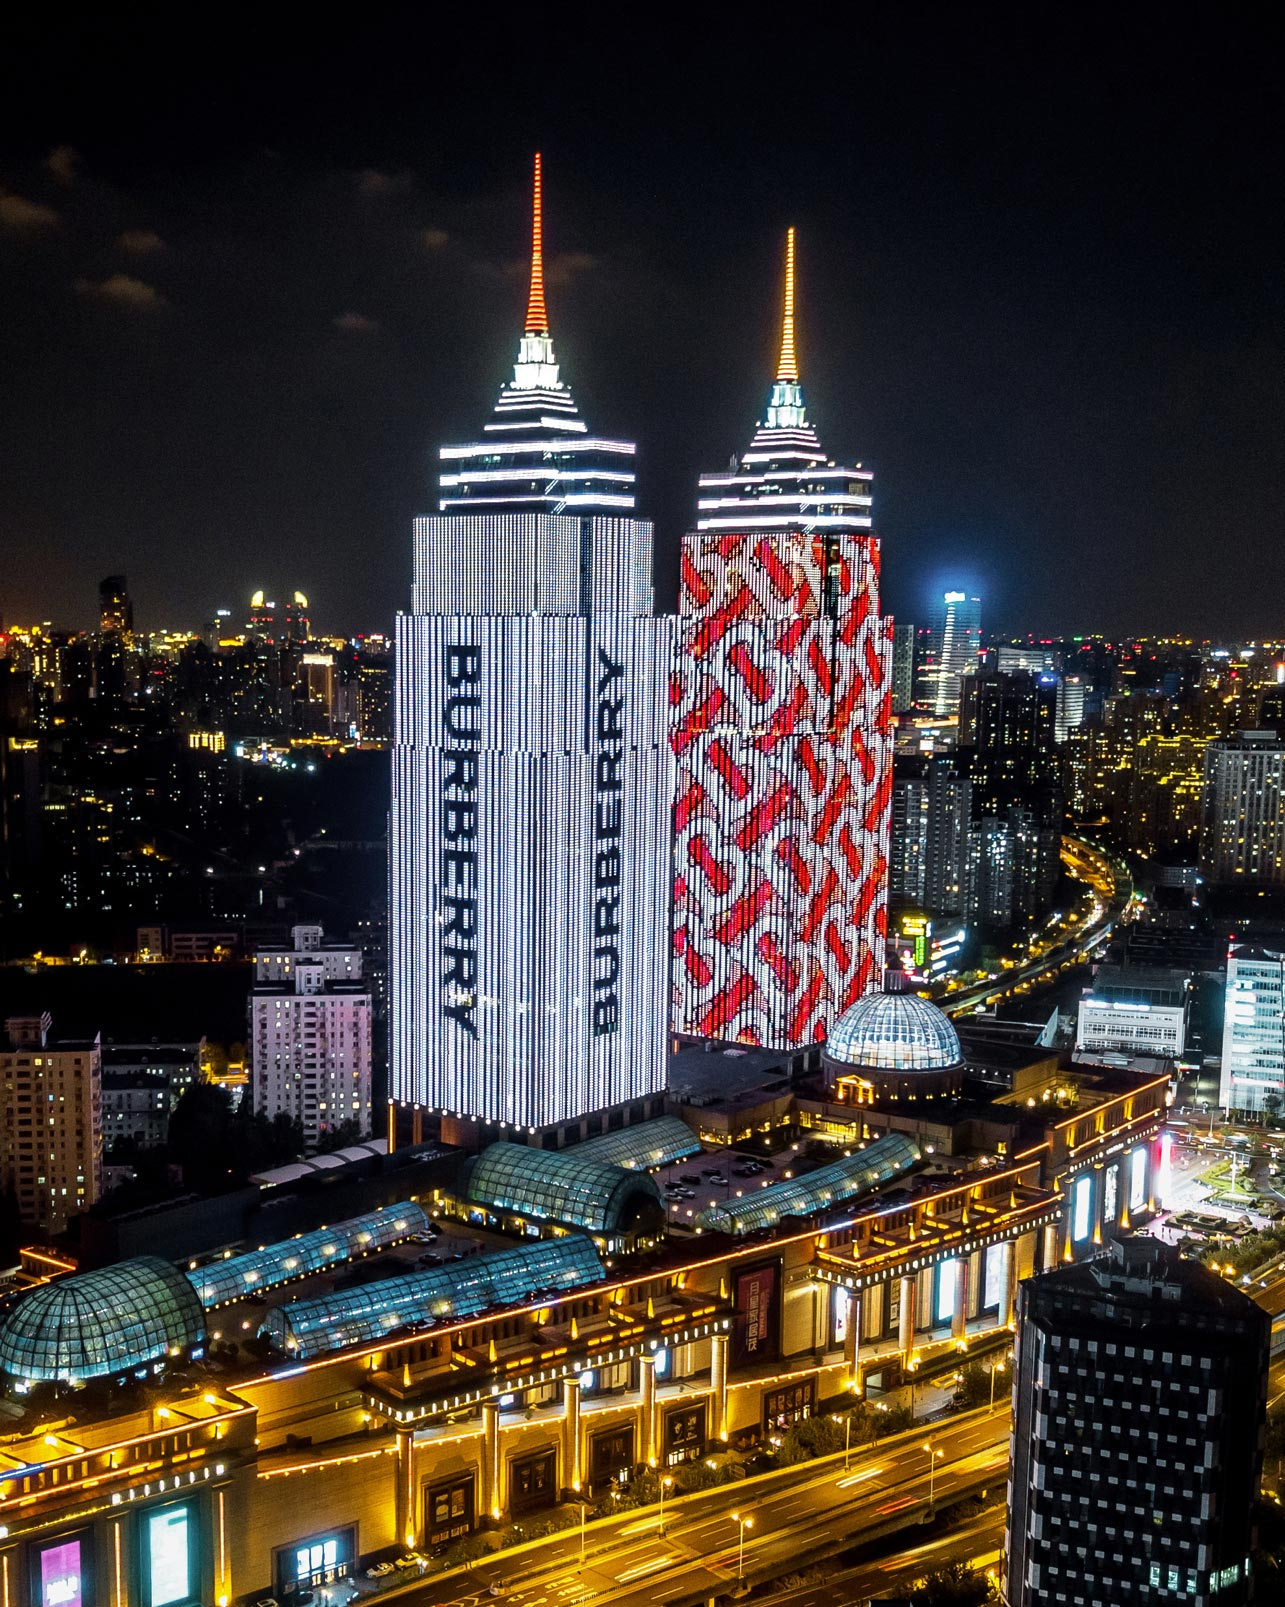 LE-MILE-Magazine-The-Thomas-Burberry-Monogram-projected-onto-Global-Harbor,-Shanghai.jpg